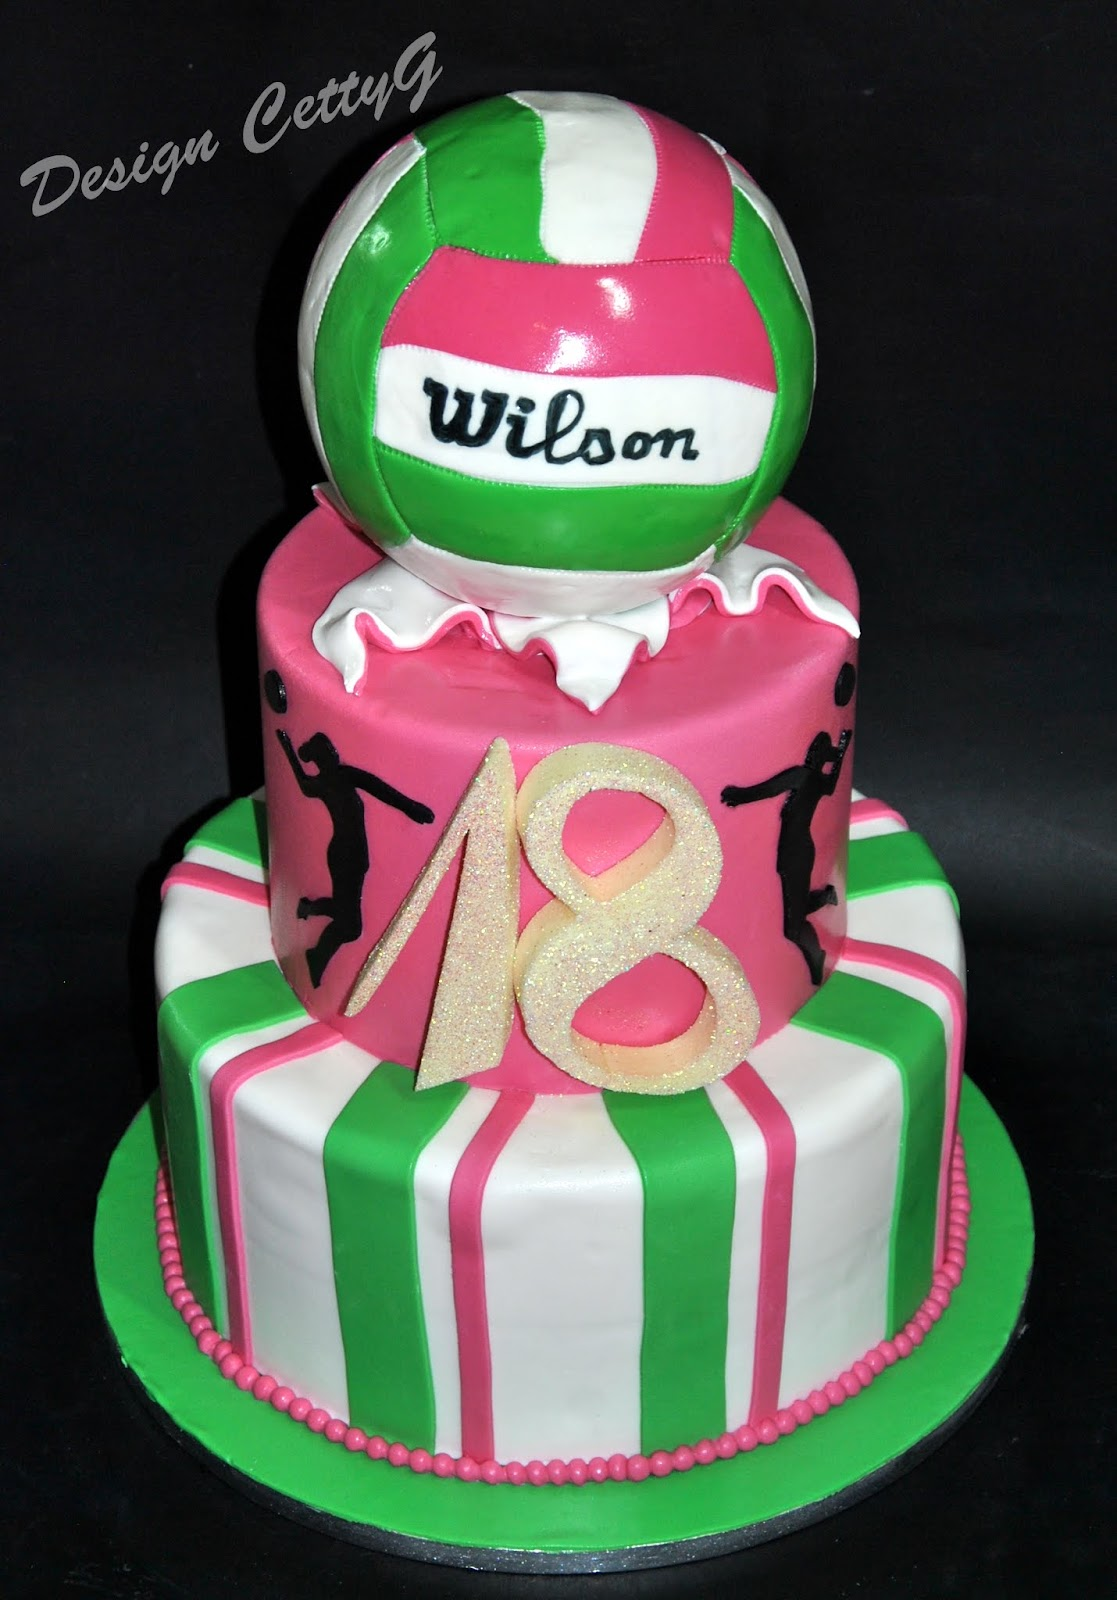 Le torte decorate di cetty g volley cake 18 anni for Torte 18 anni ragazzo